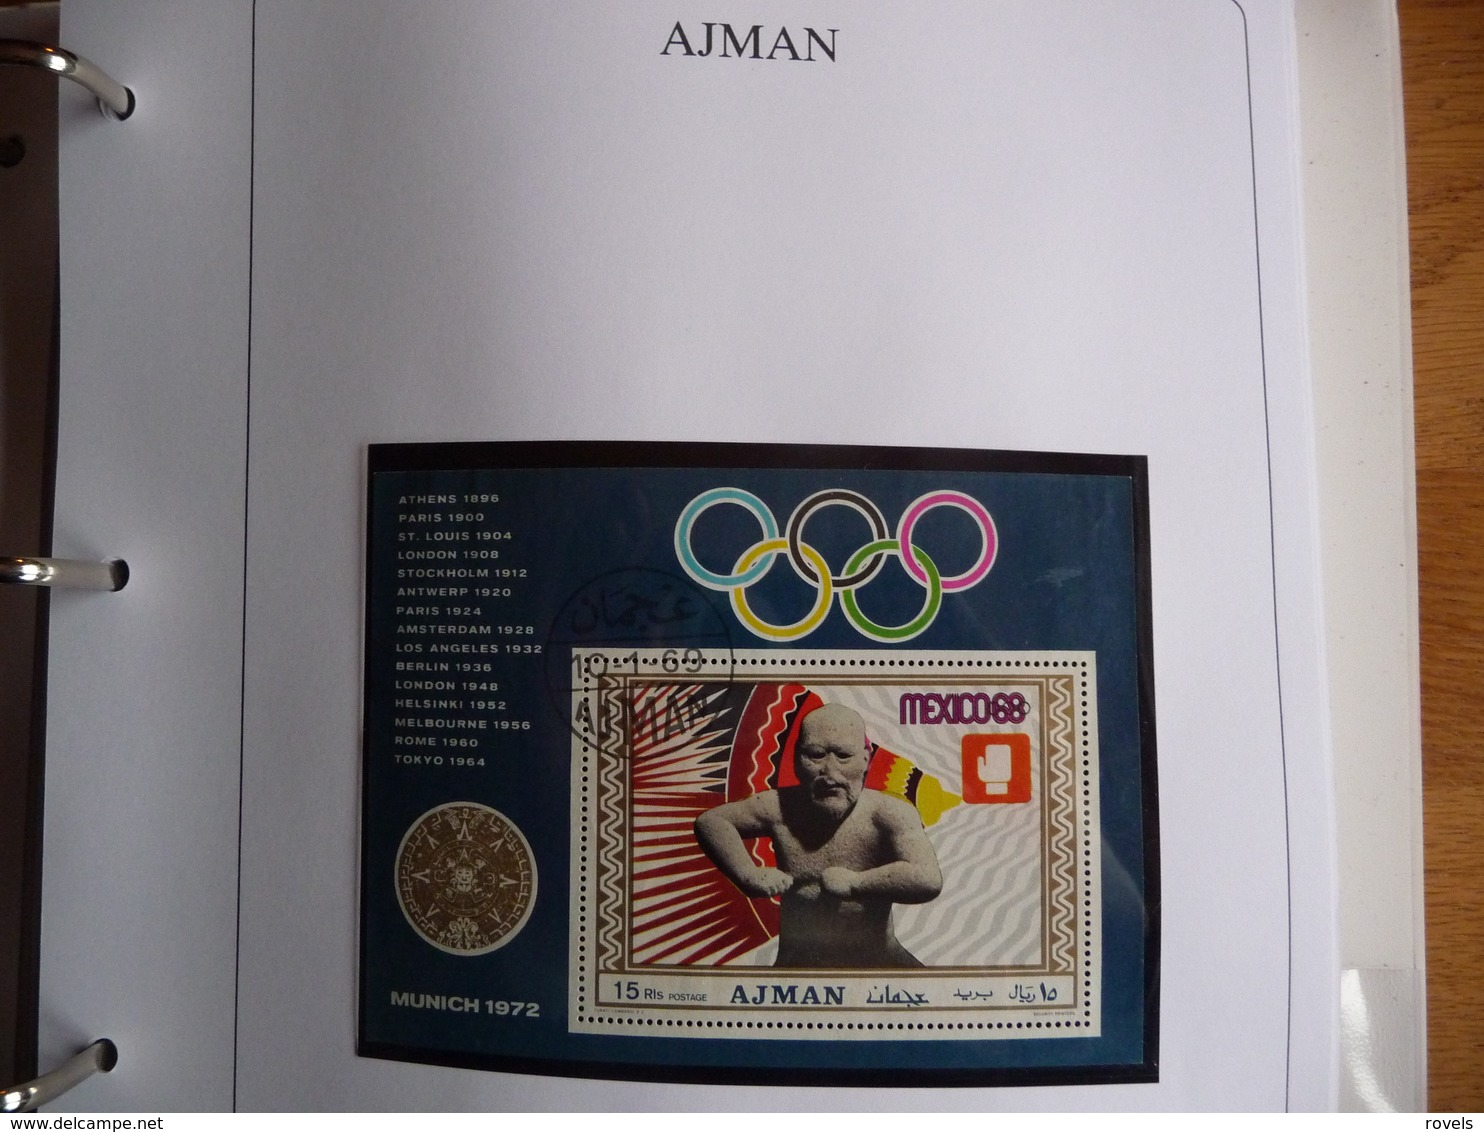 (OLYM1) AJAM   5 SHEETS IMPERF PERF OLYMPIC  ZOMER GAMES MEXICO 1968. - Zomer 1968: Mexico-City